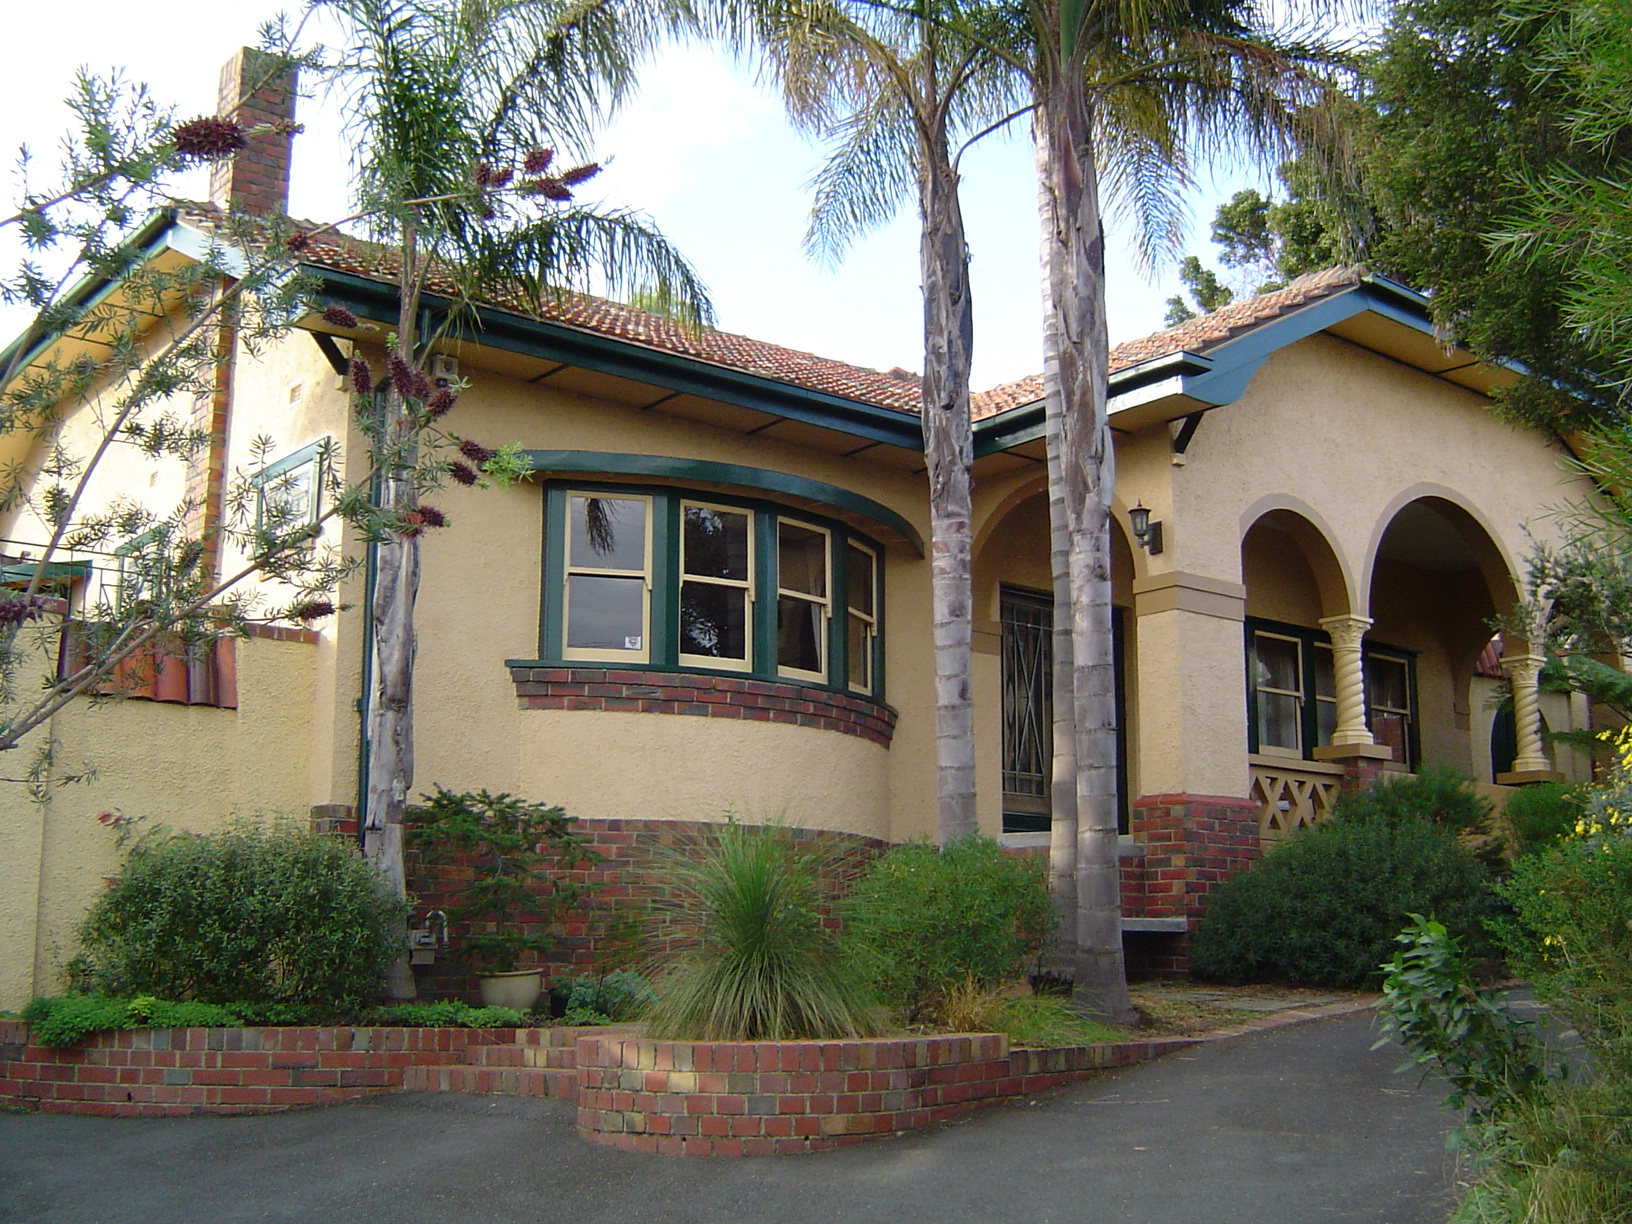 File:Spanish Mission style house in Heidelberg, Victoria.jpg